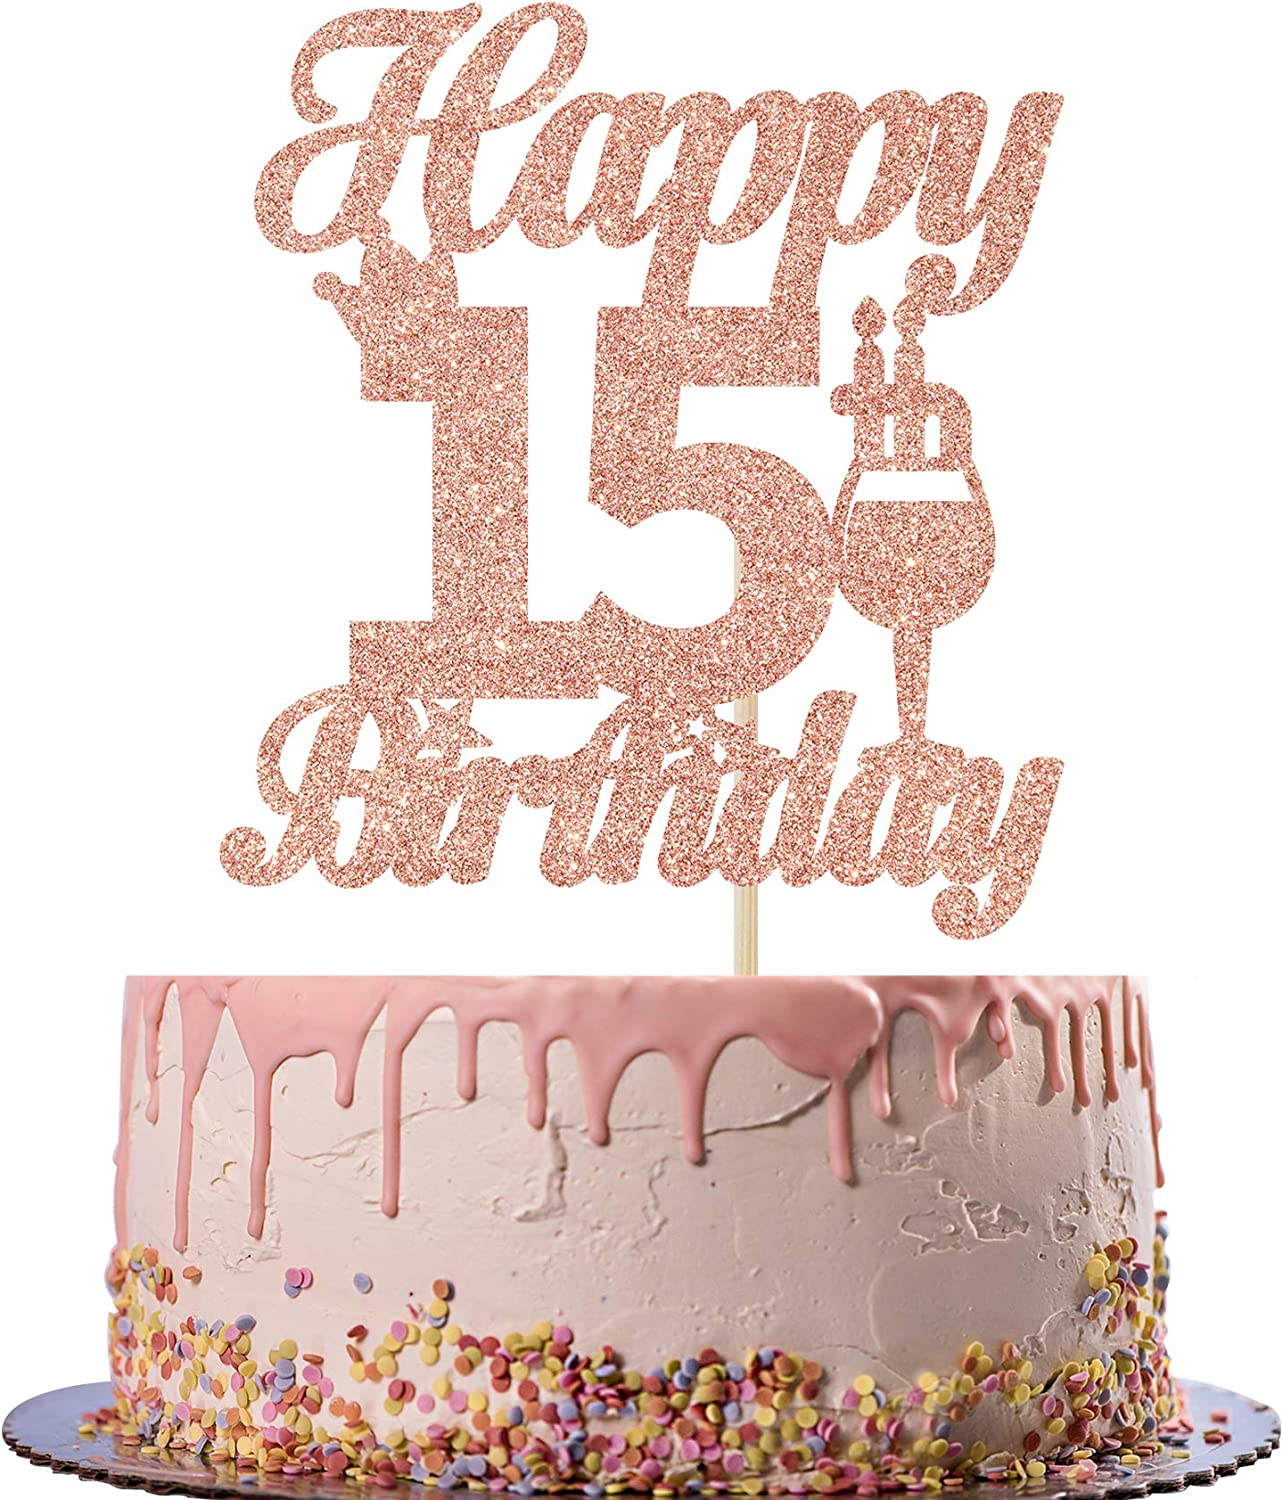 Rose Gold Glitter Happy 15th Birthday Cake Topper - Cheers to 15 Years Old Cake Decor -15th Birthday/Anniversary Party Decoration Supplies